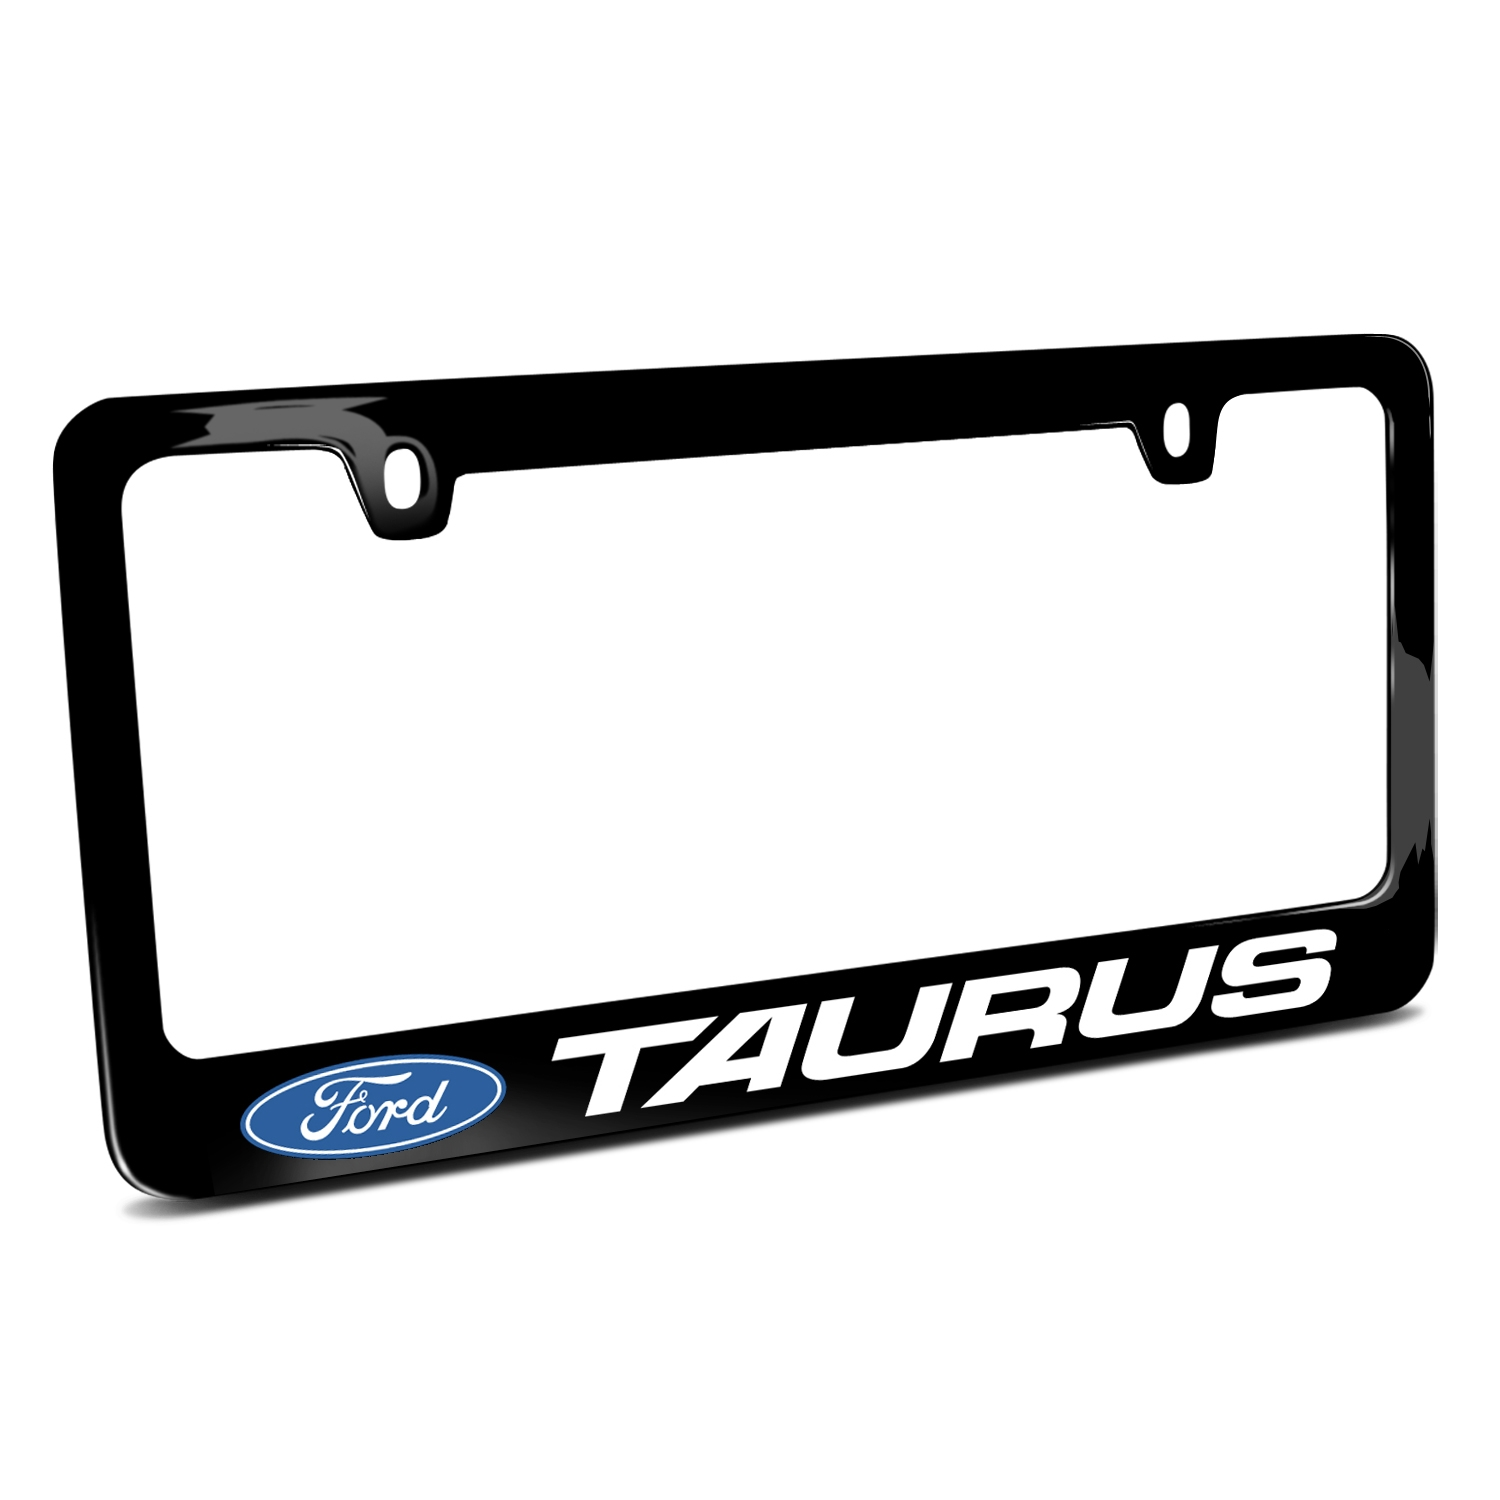 Ford Taurus Black Metal License Plate Frame